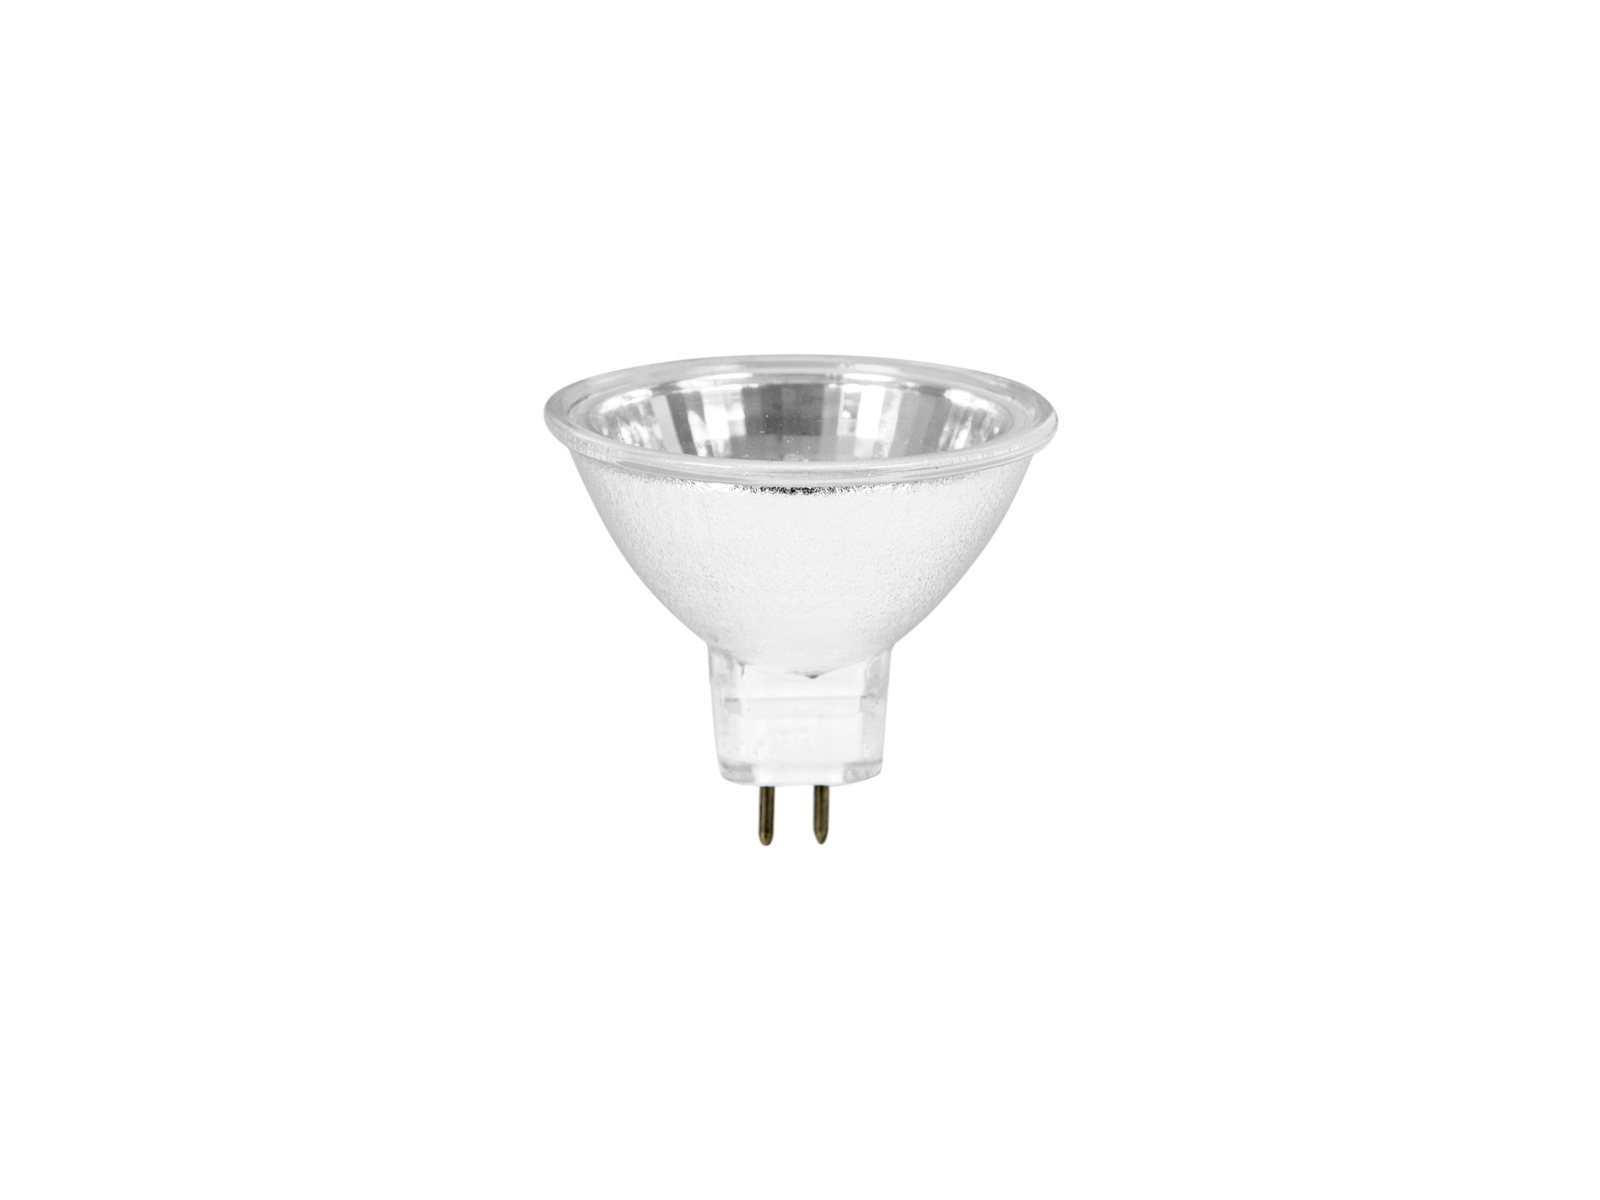 OMNILUX MR-16 12V/50W GX 5.3 SP 12° blu